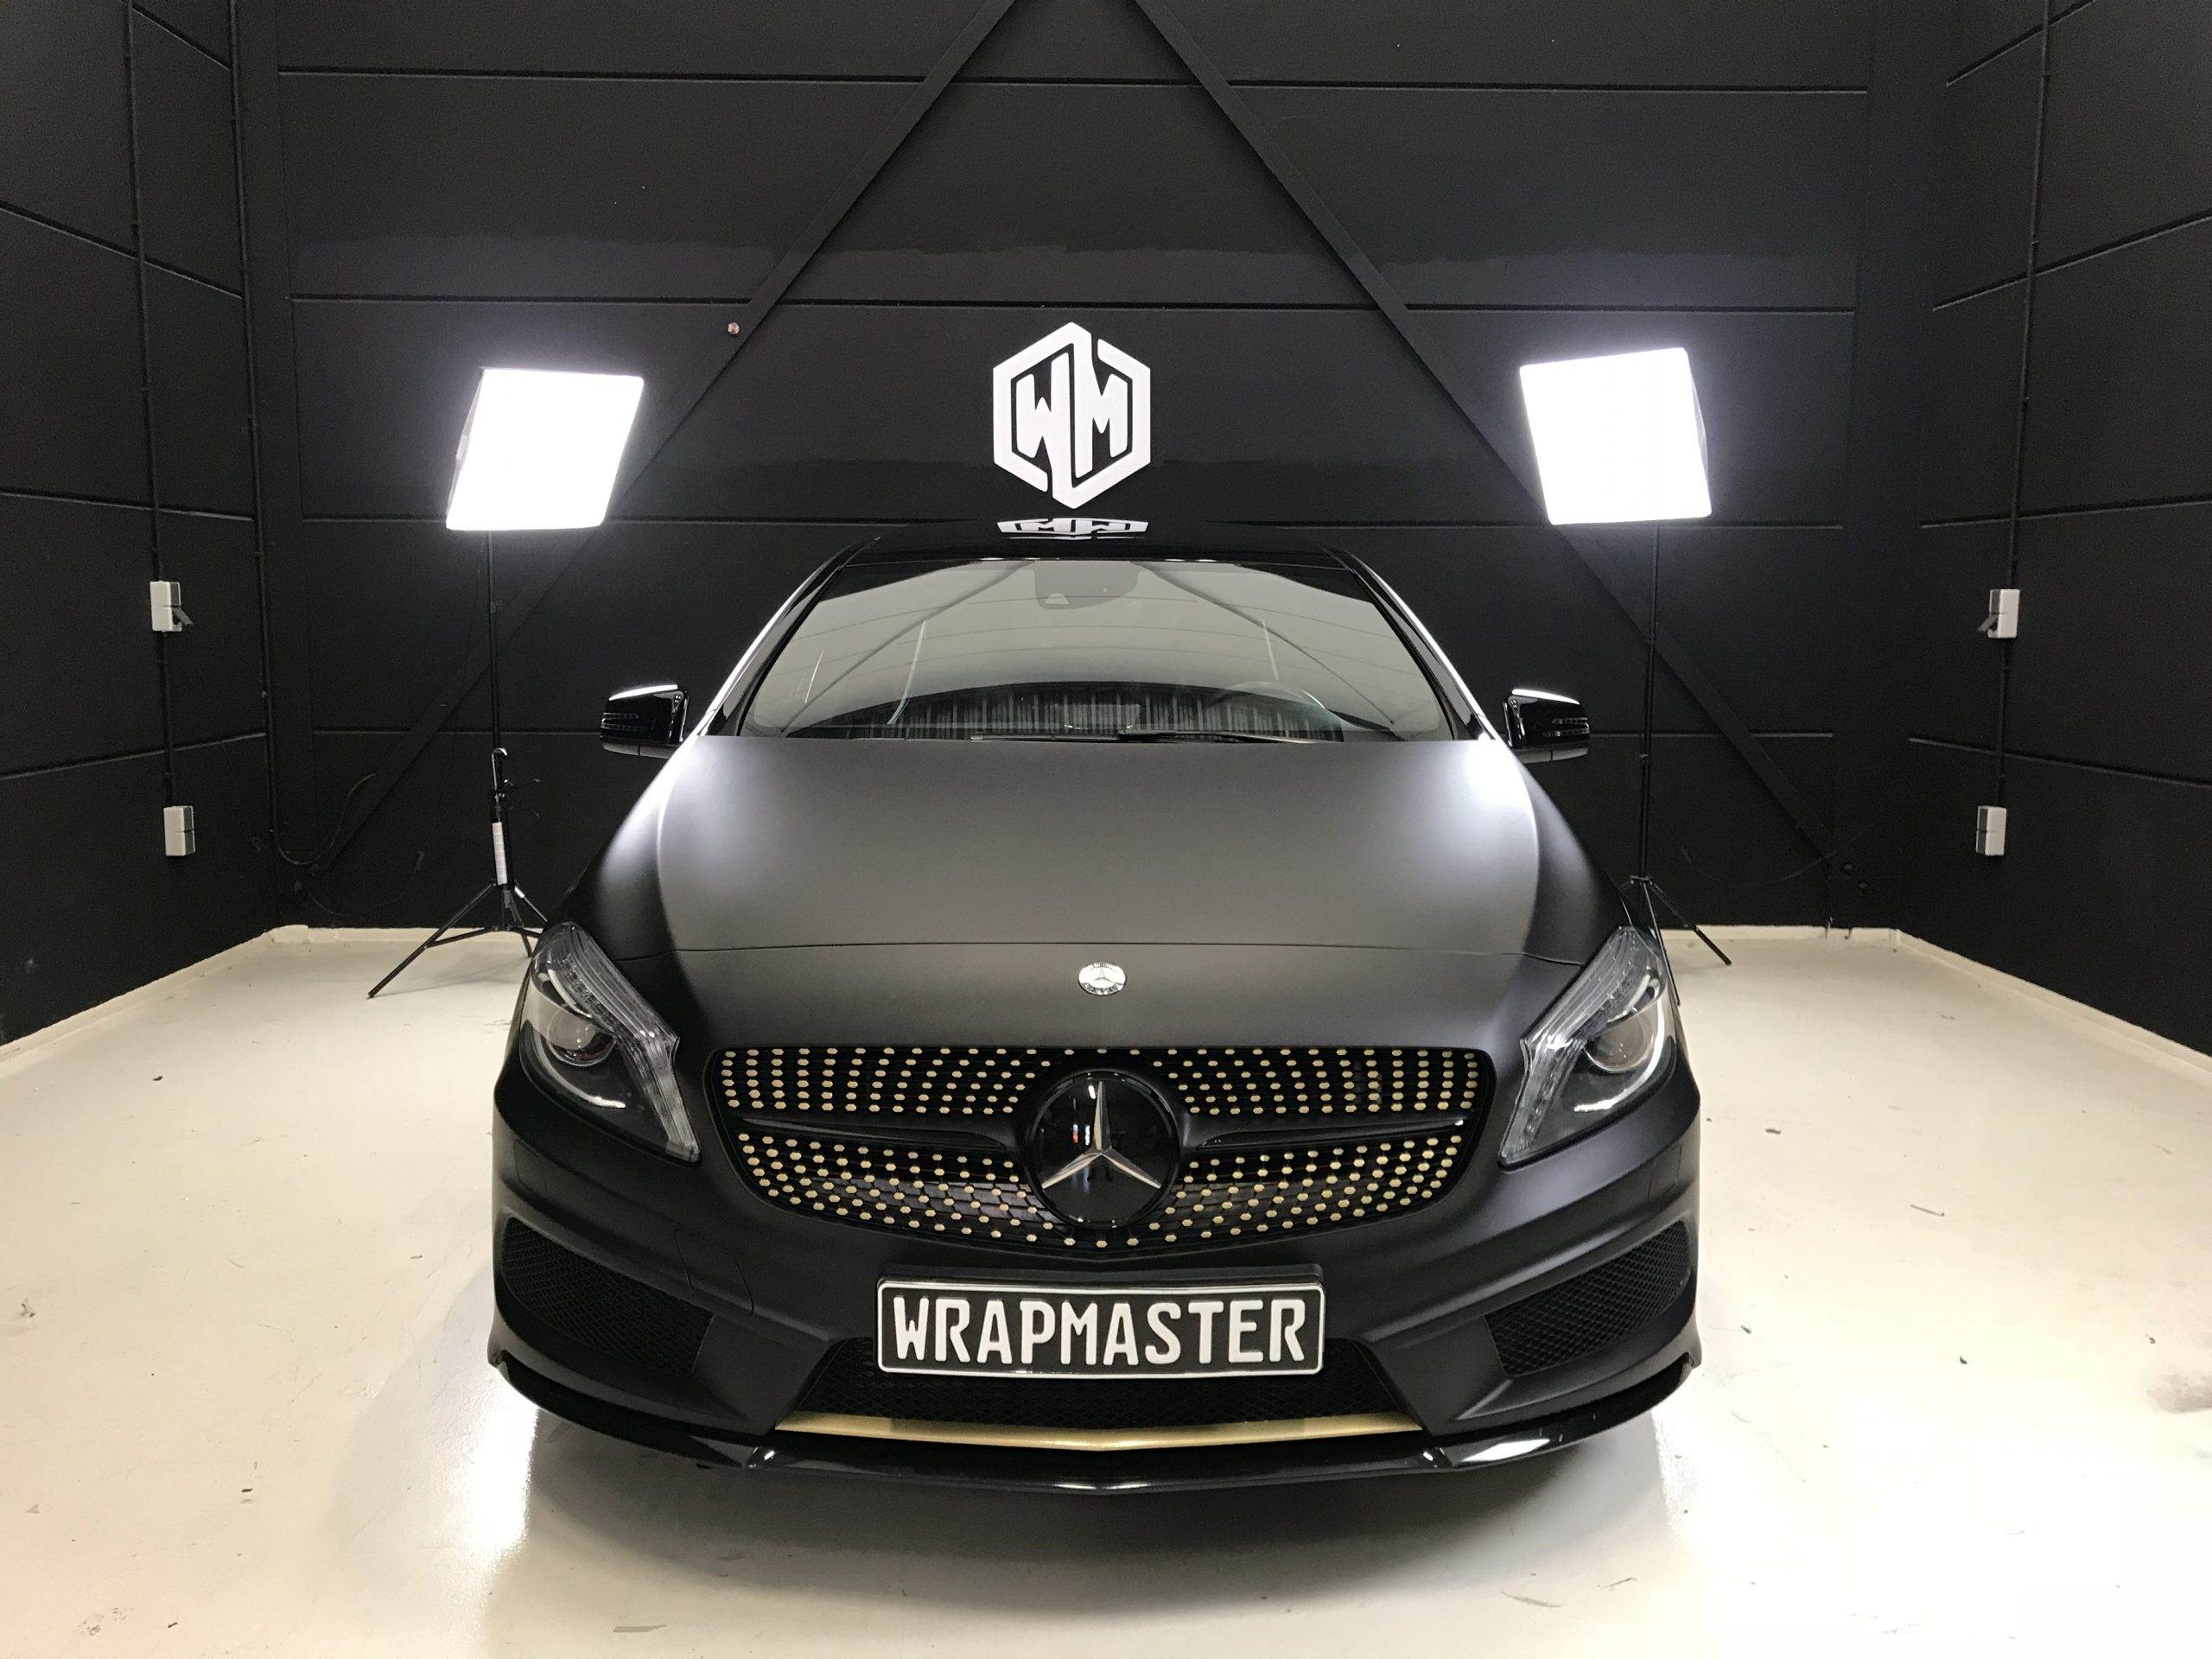 Detailwrapping